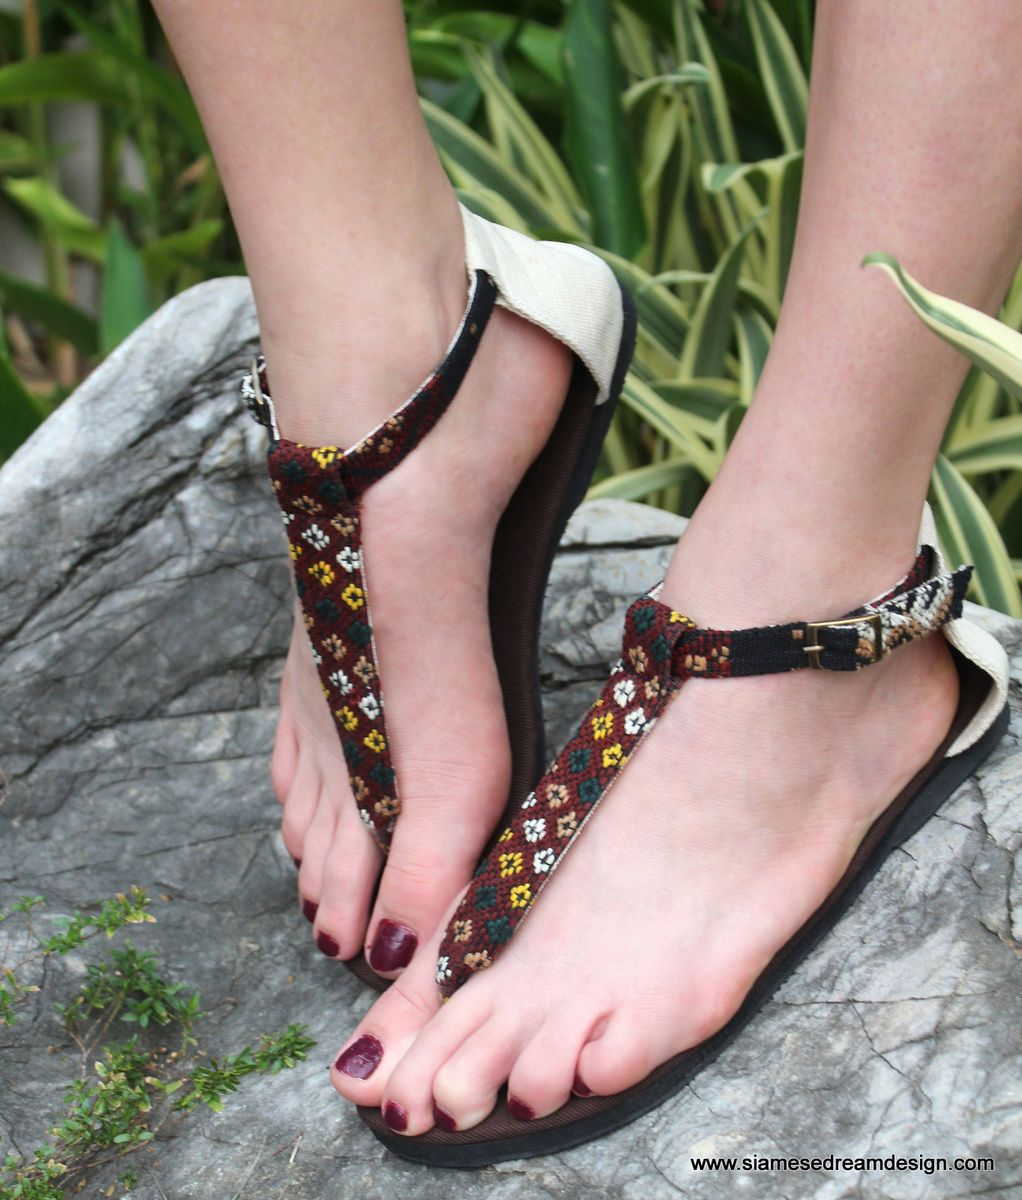 Womens sandals - 25 Women S Sandal Ideas For Spring For All Occasions